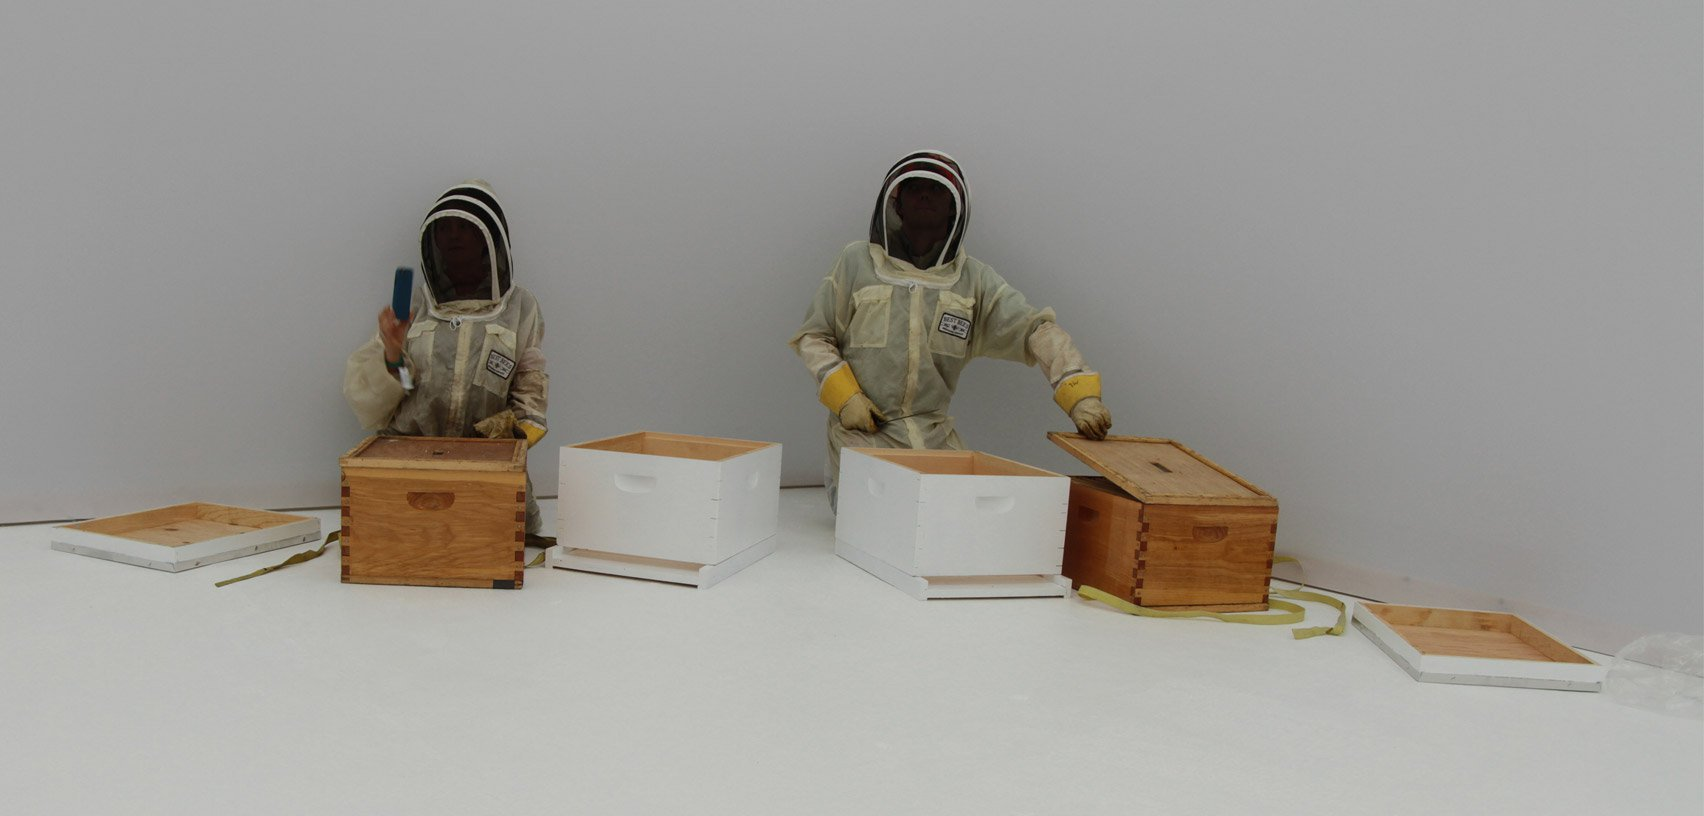 Stupina Artificiala - Synthetic Apiary